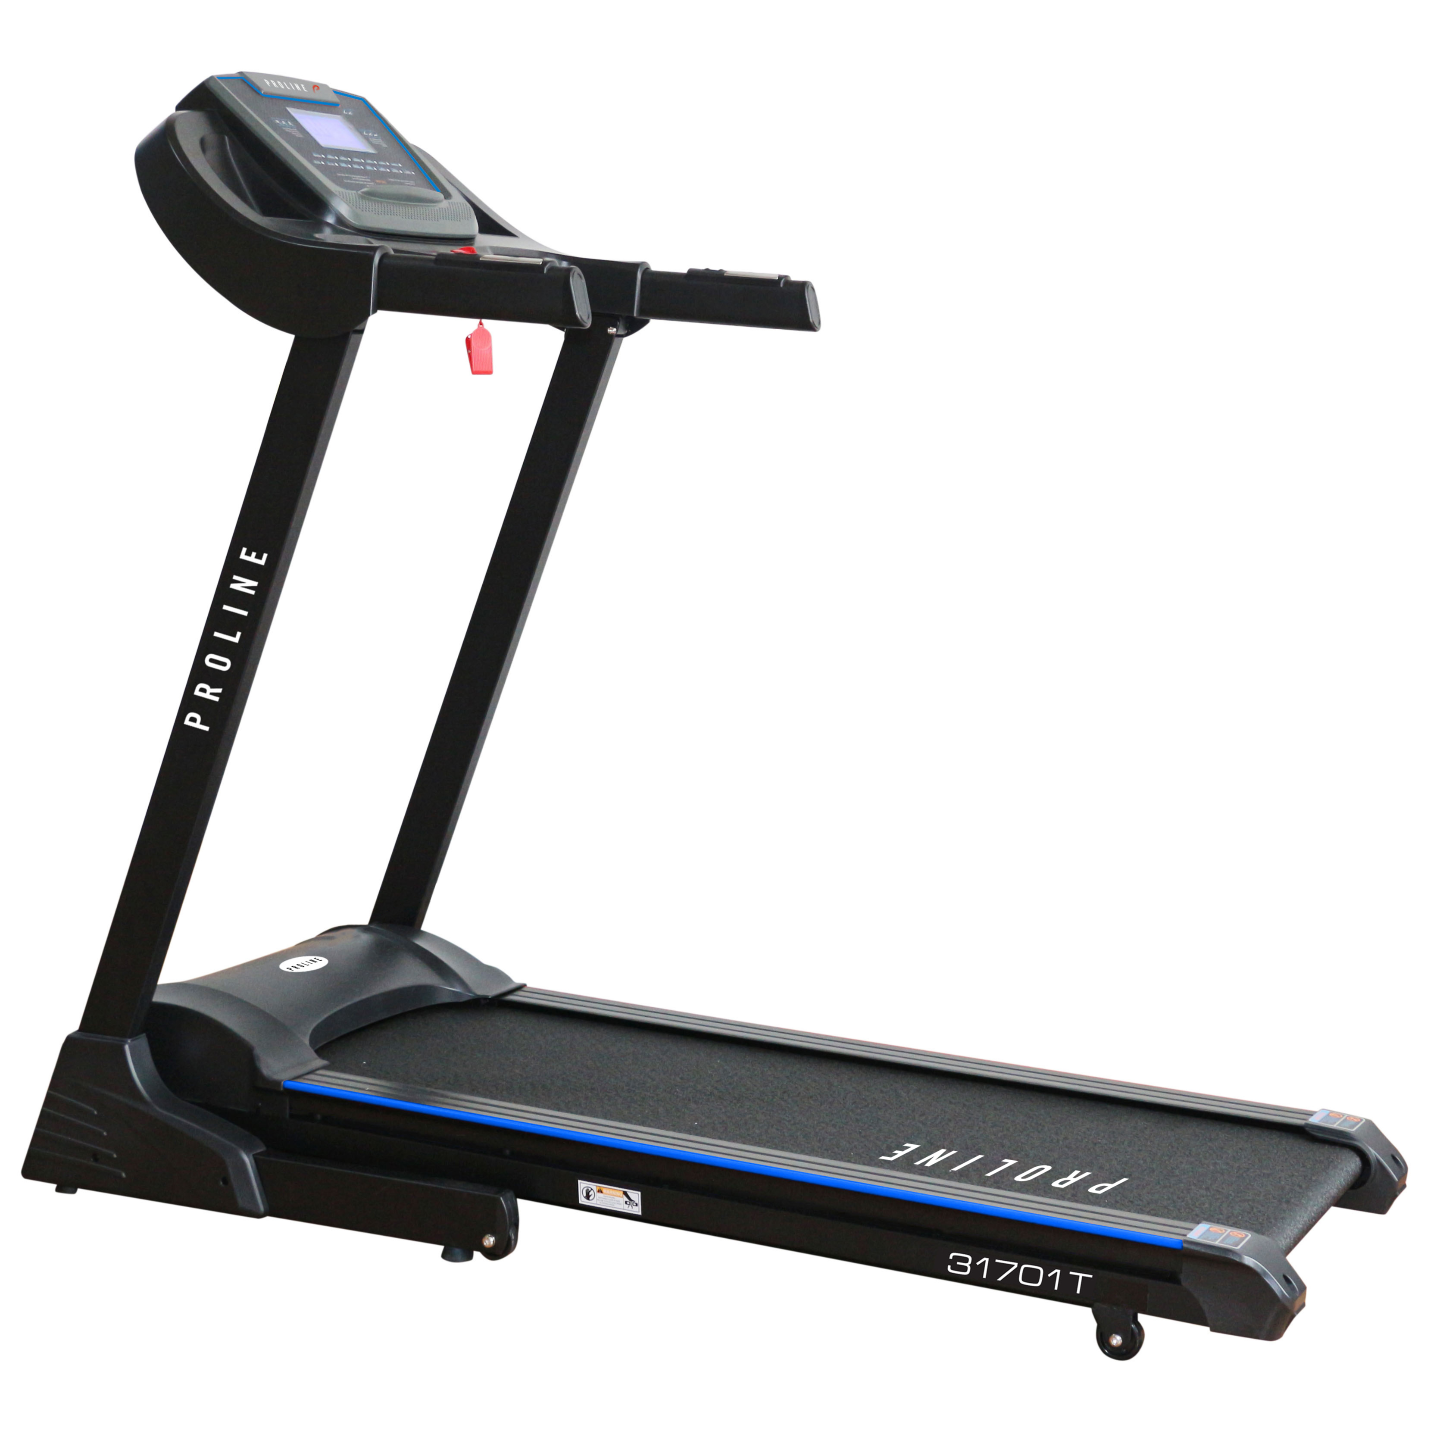 PROLINE 31701T TREADMILL